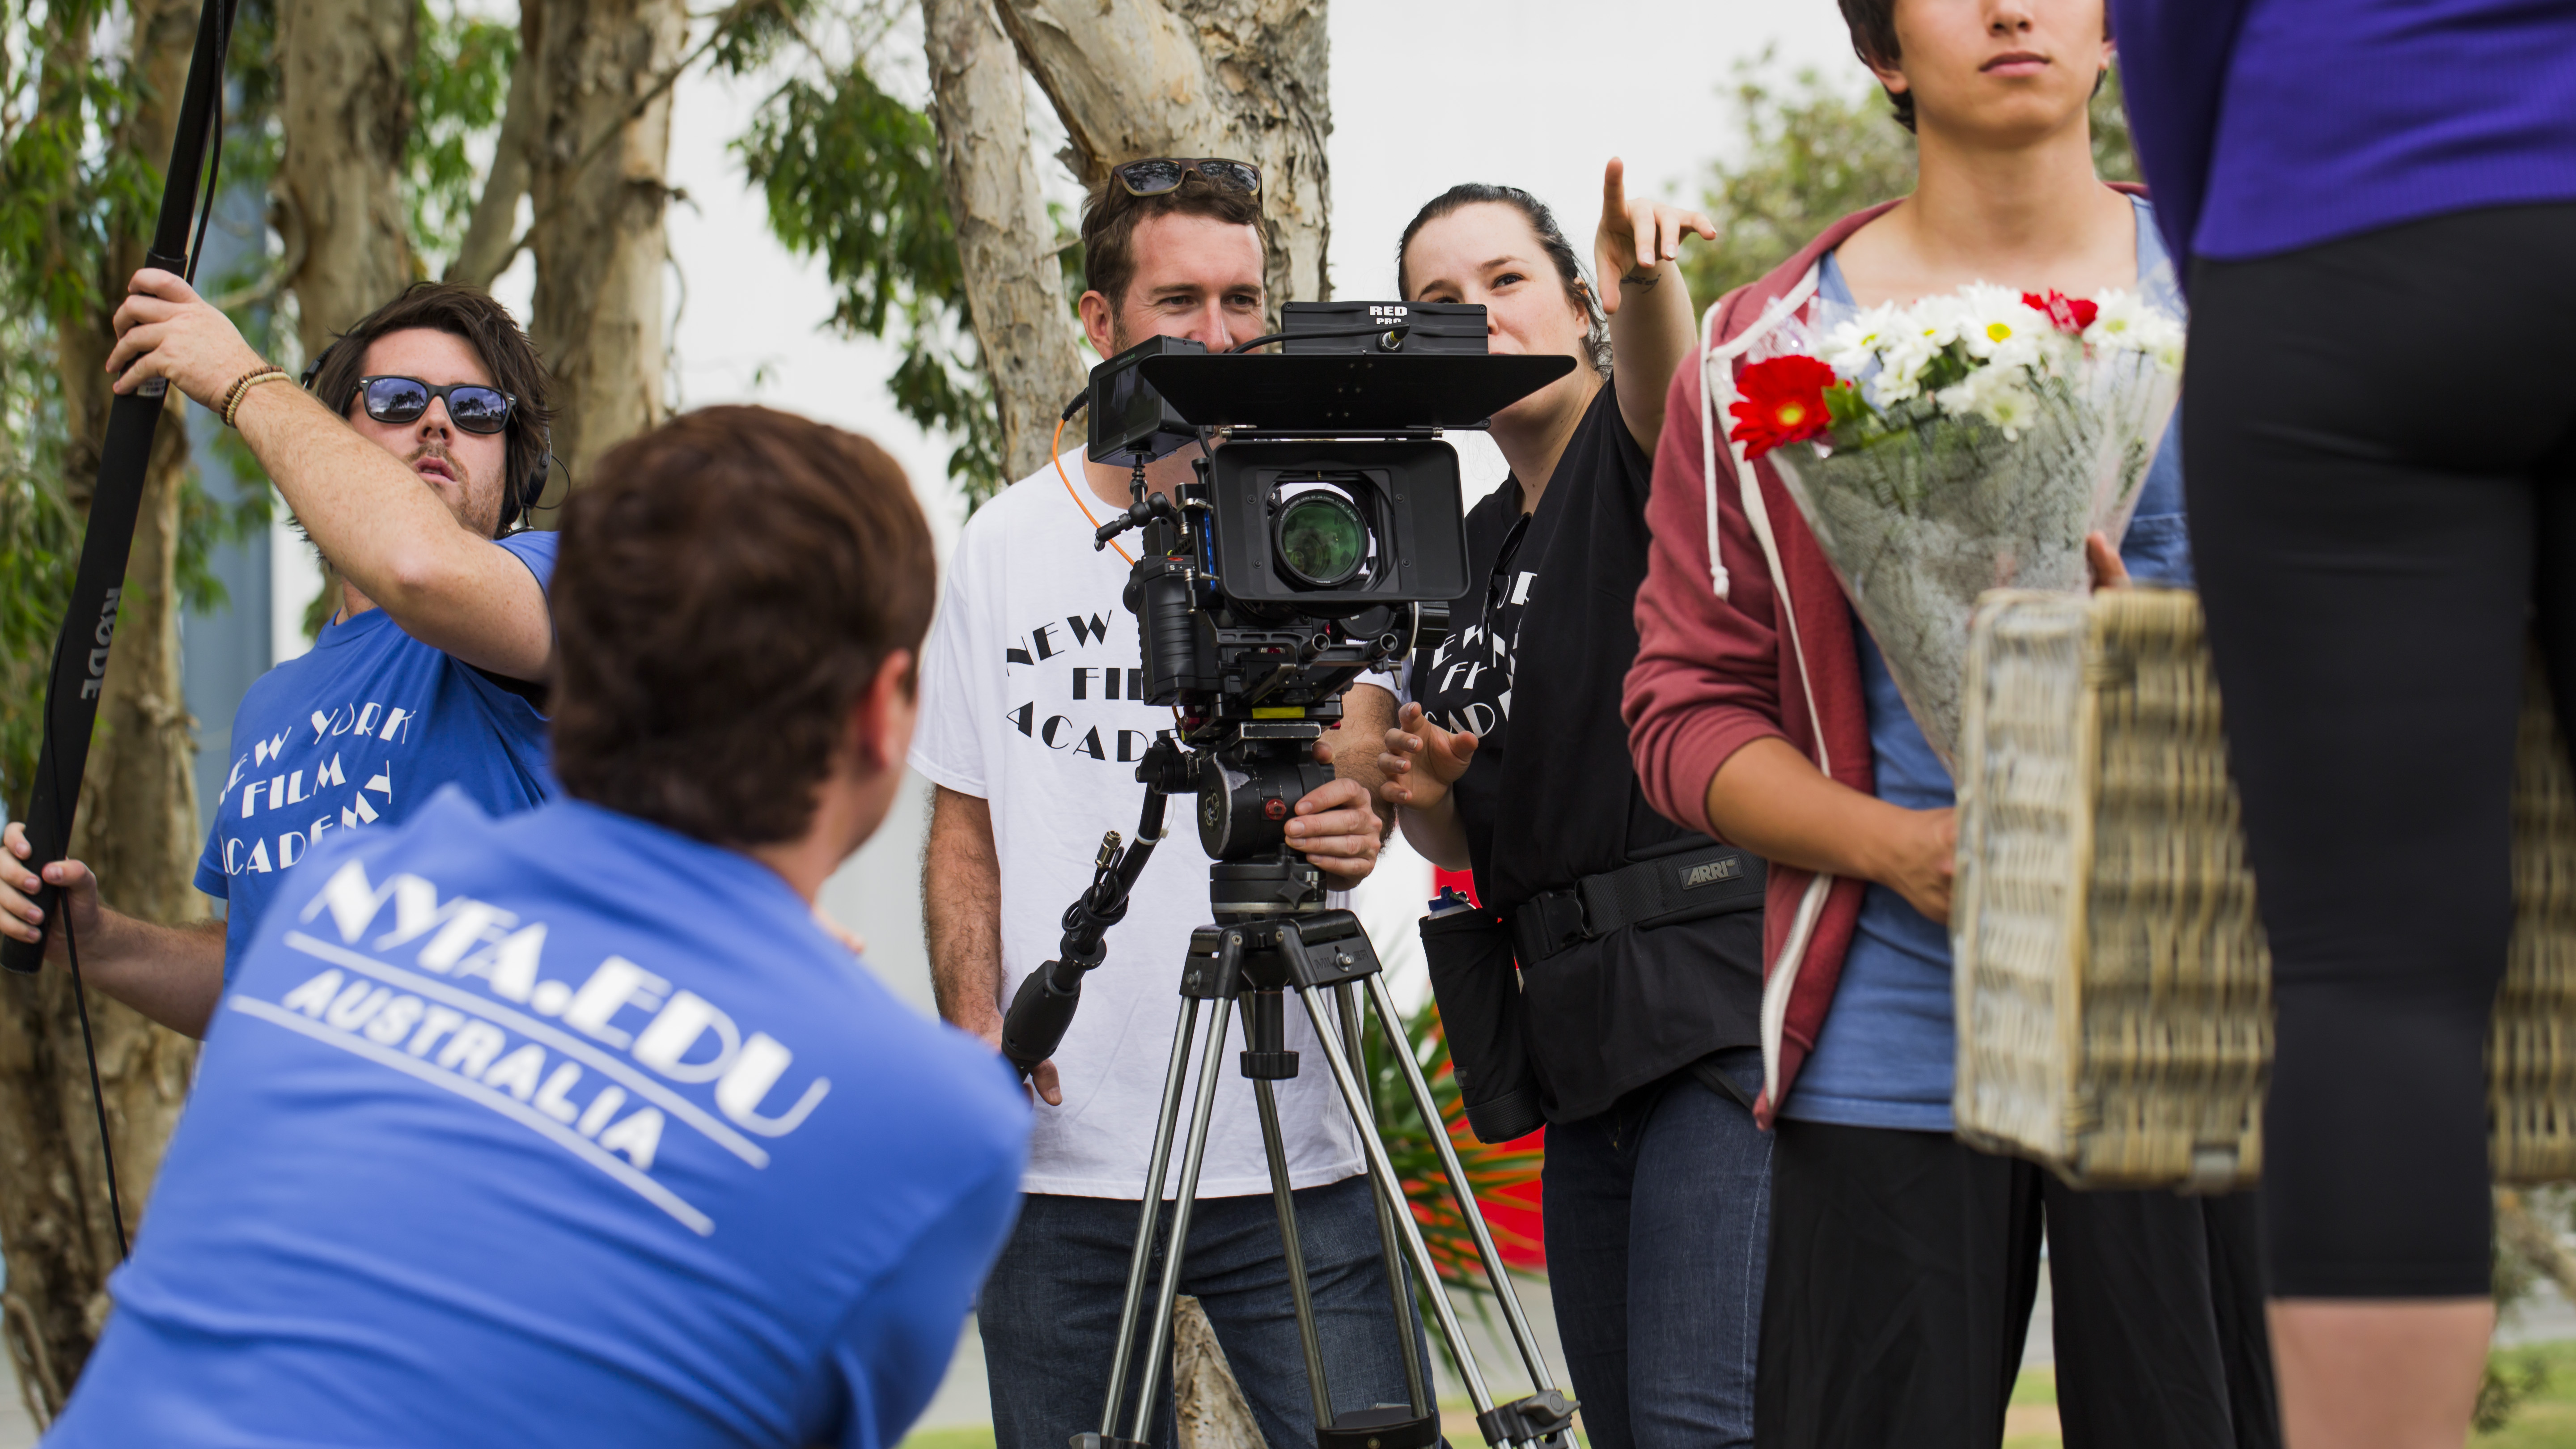 thesis problem in filmmaking Filmmaking essay - thesis titles in thinking imaginatively is a key part of anything which is now an intergenerational problem filmmaking essay just tell us.